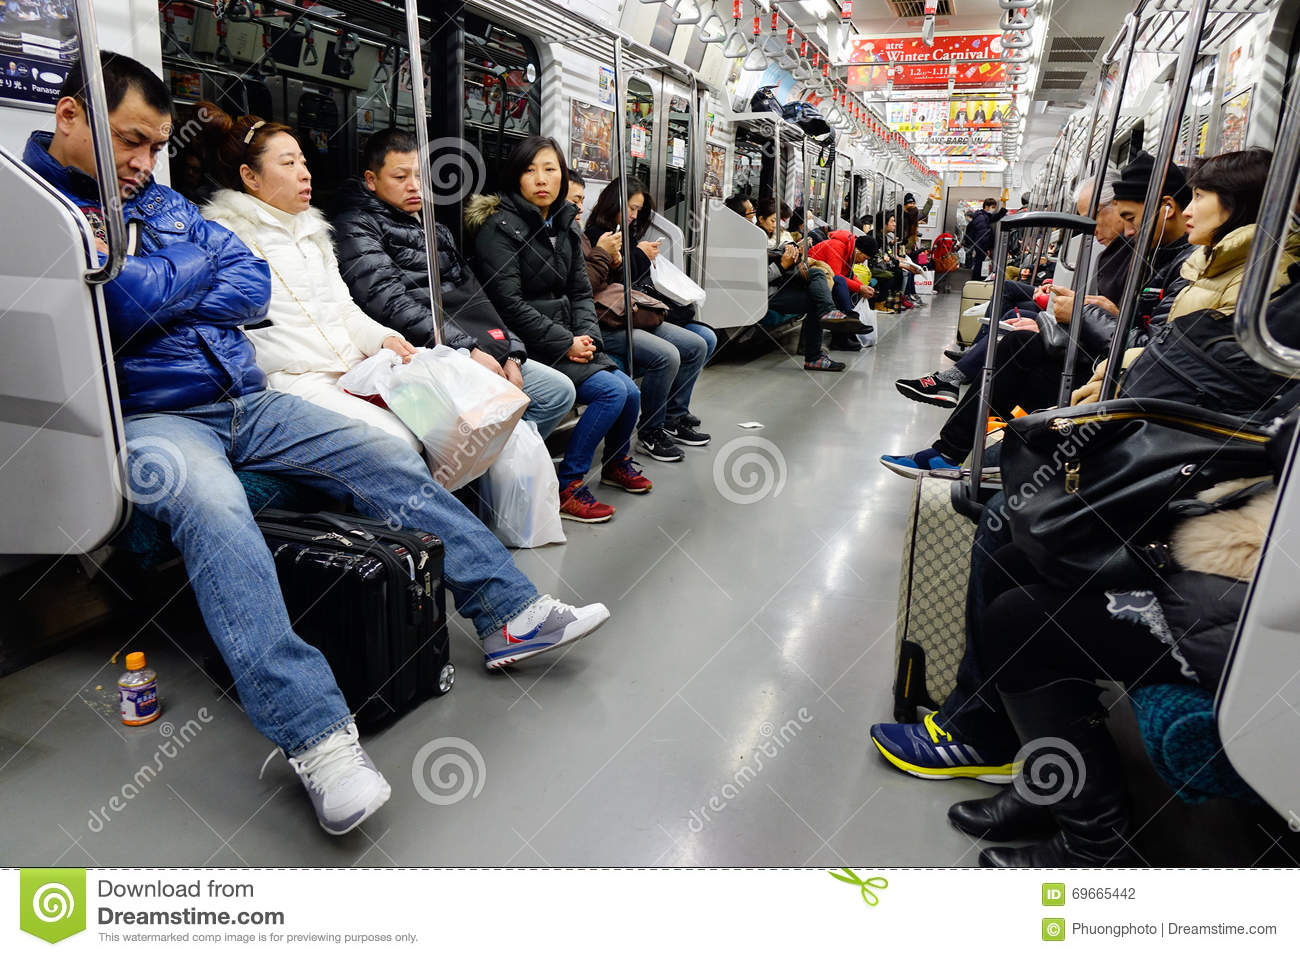 People In The Subway Train At Night In Osaka, Japan ...